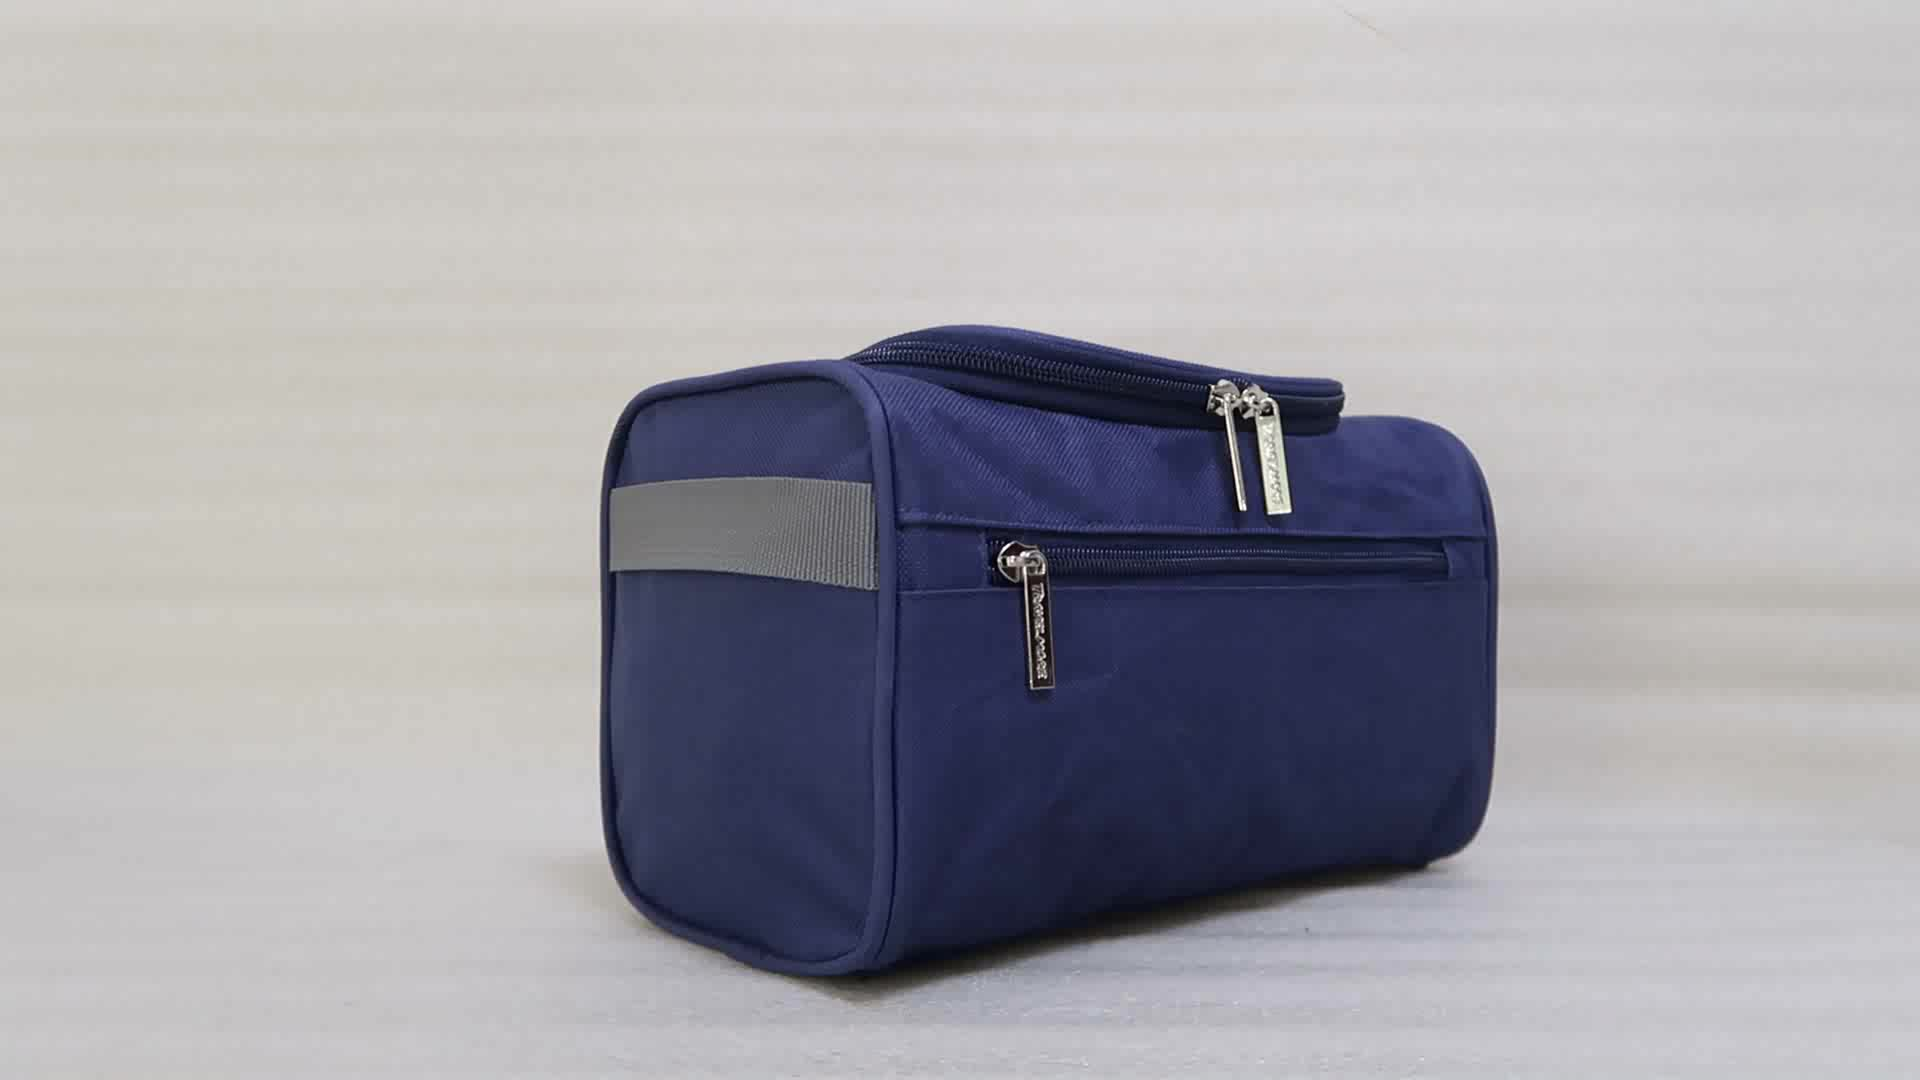 Durable polyester various color customizable travel toiletry bag